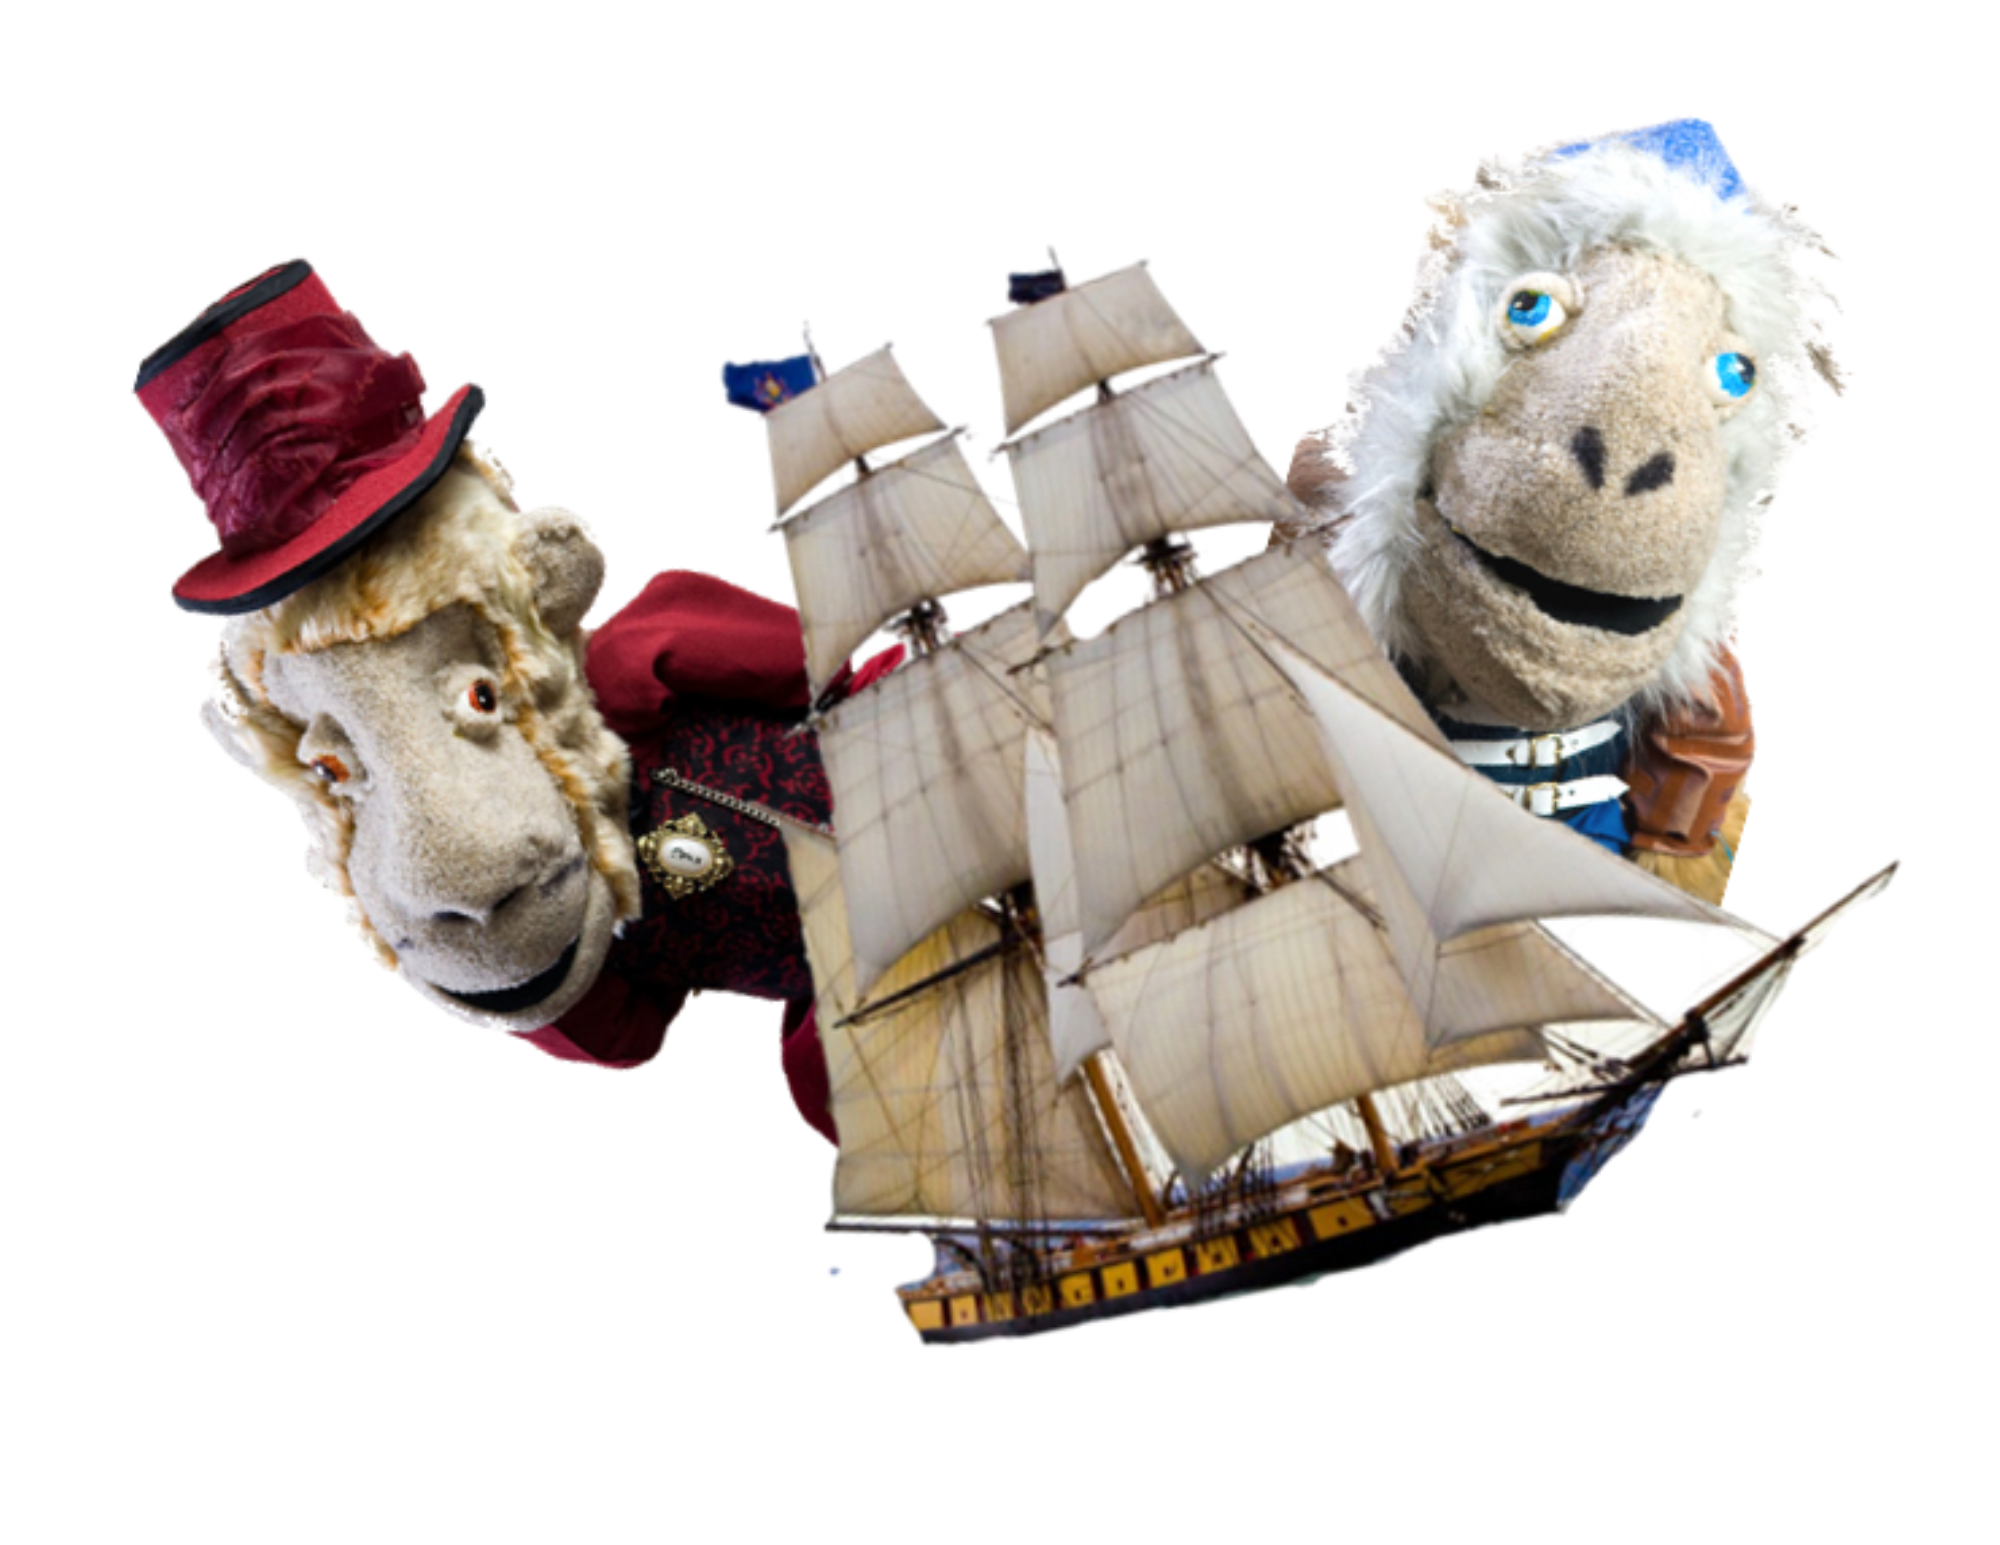 Two monkey puppets dressed as pirates flank an old brig sailing ship